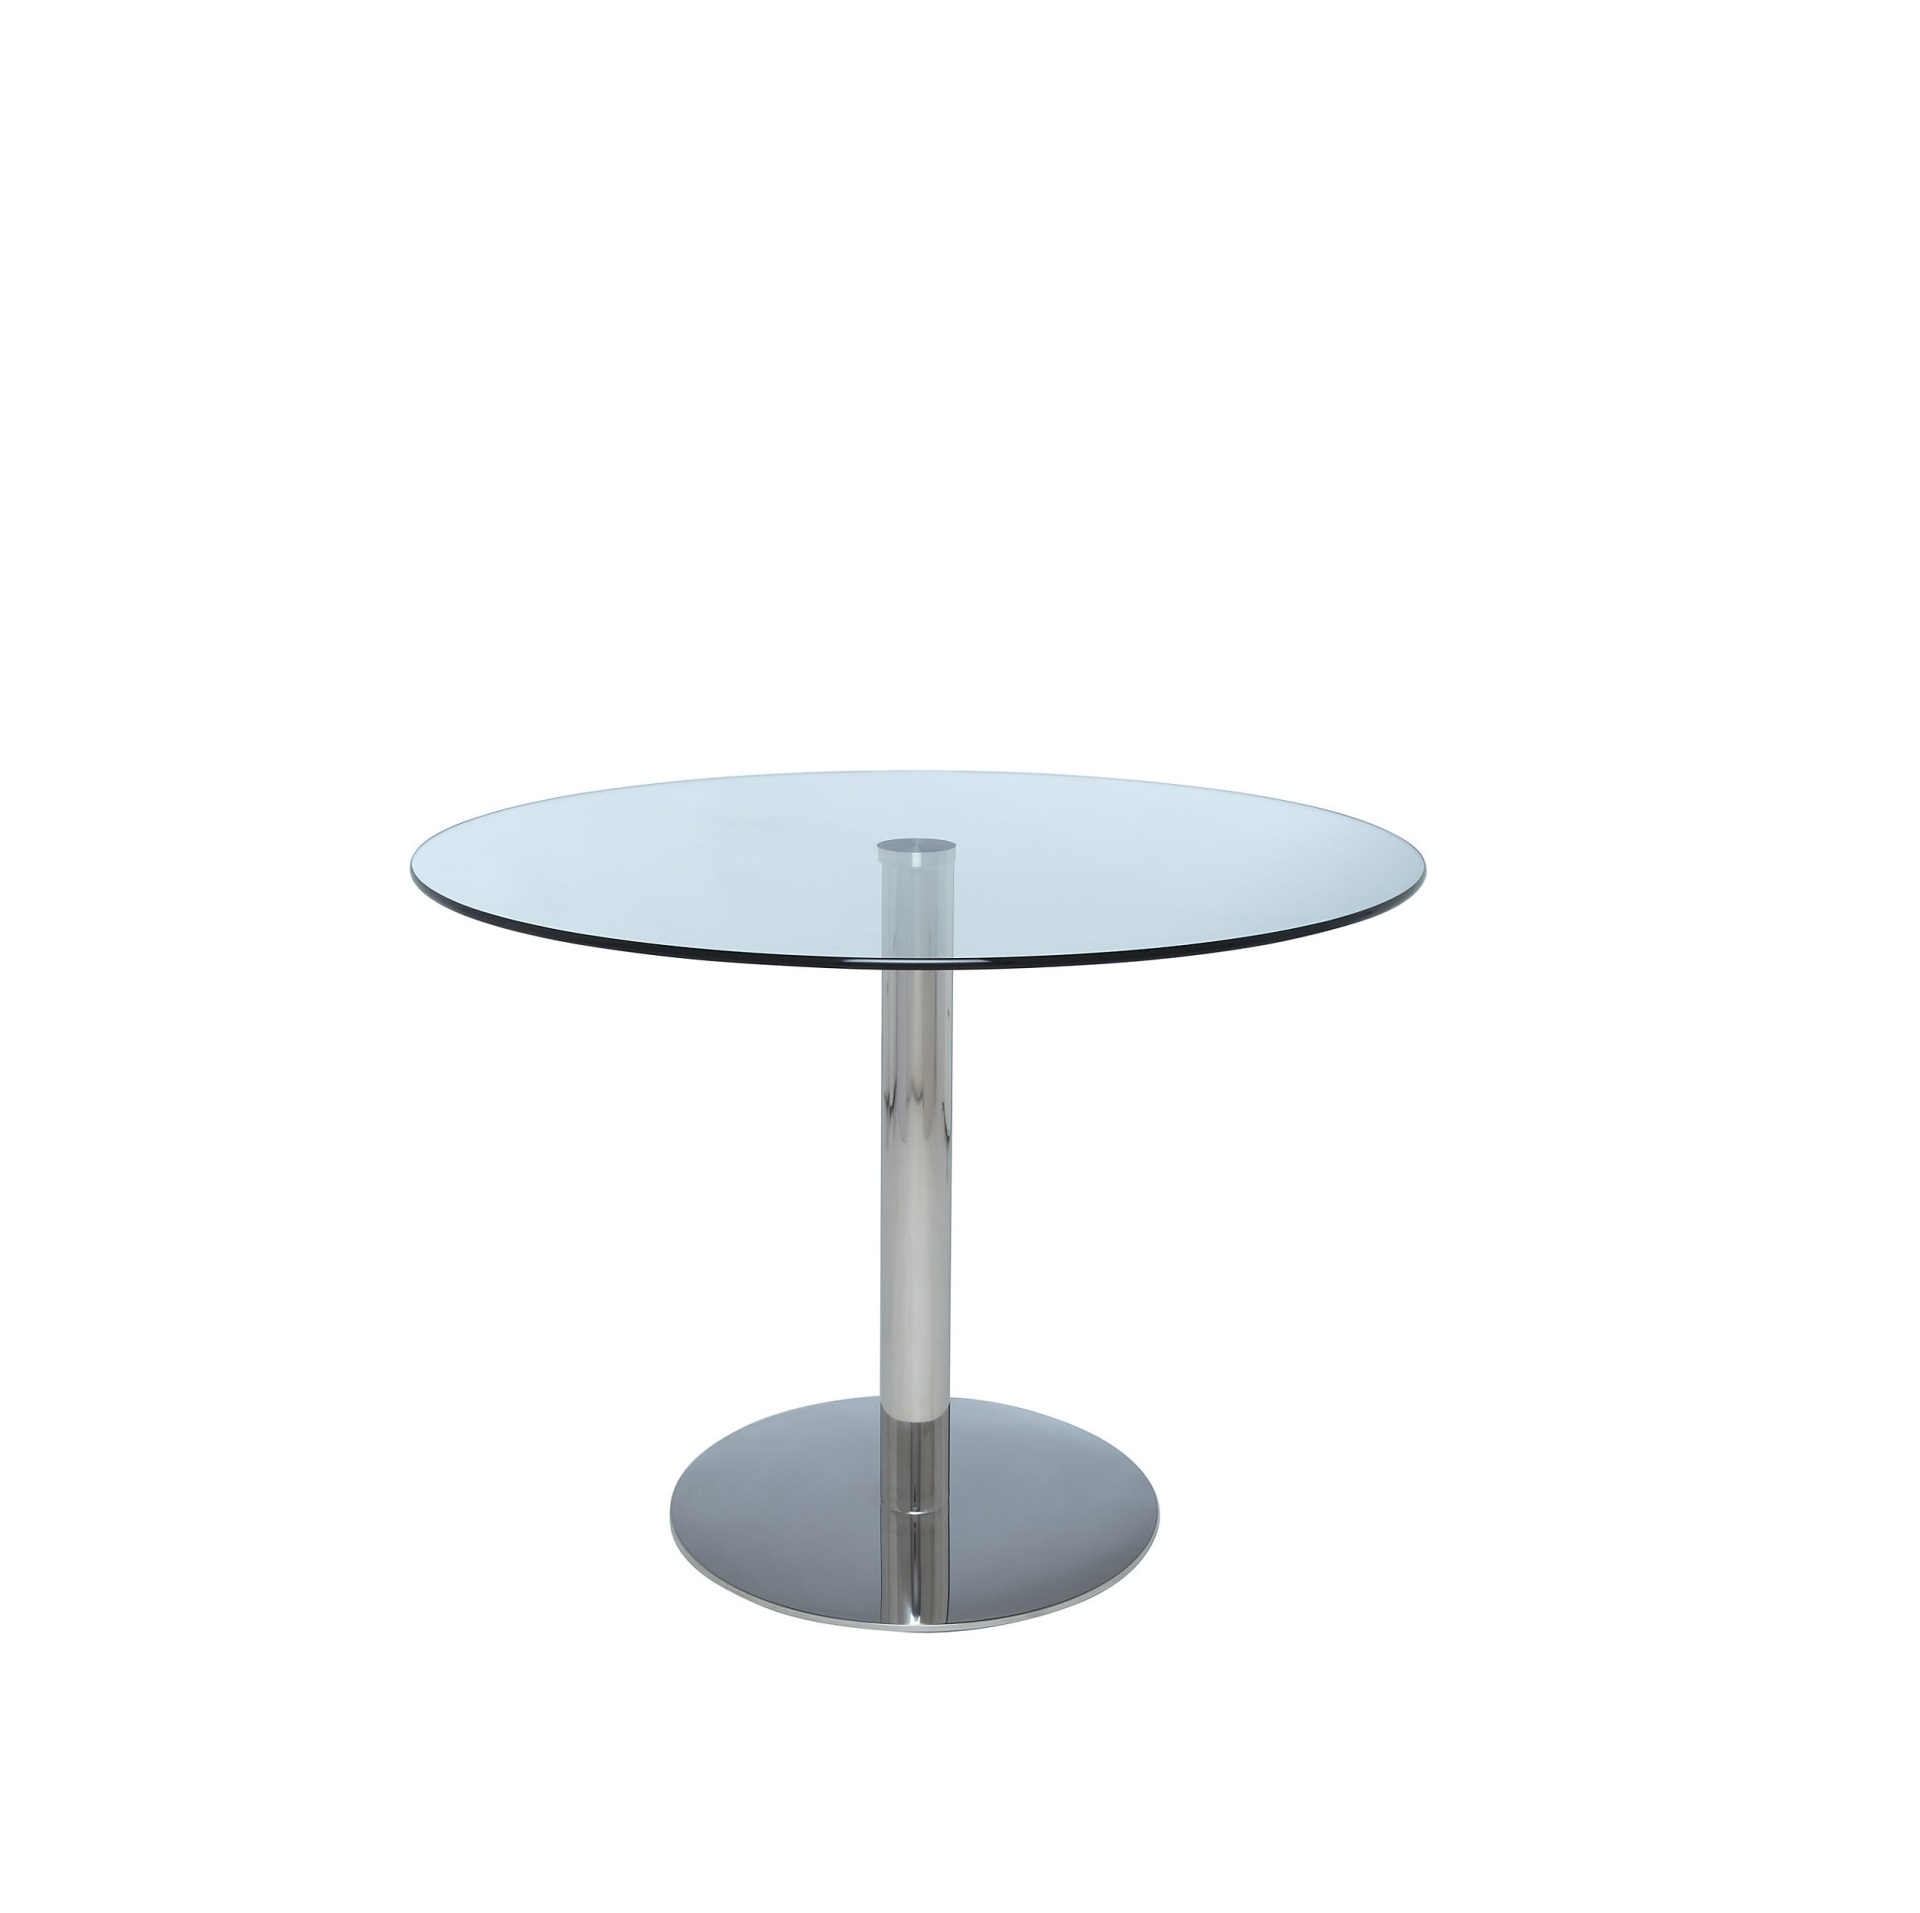 Sir Dining Table